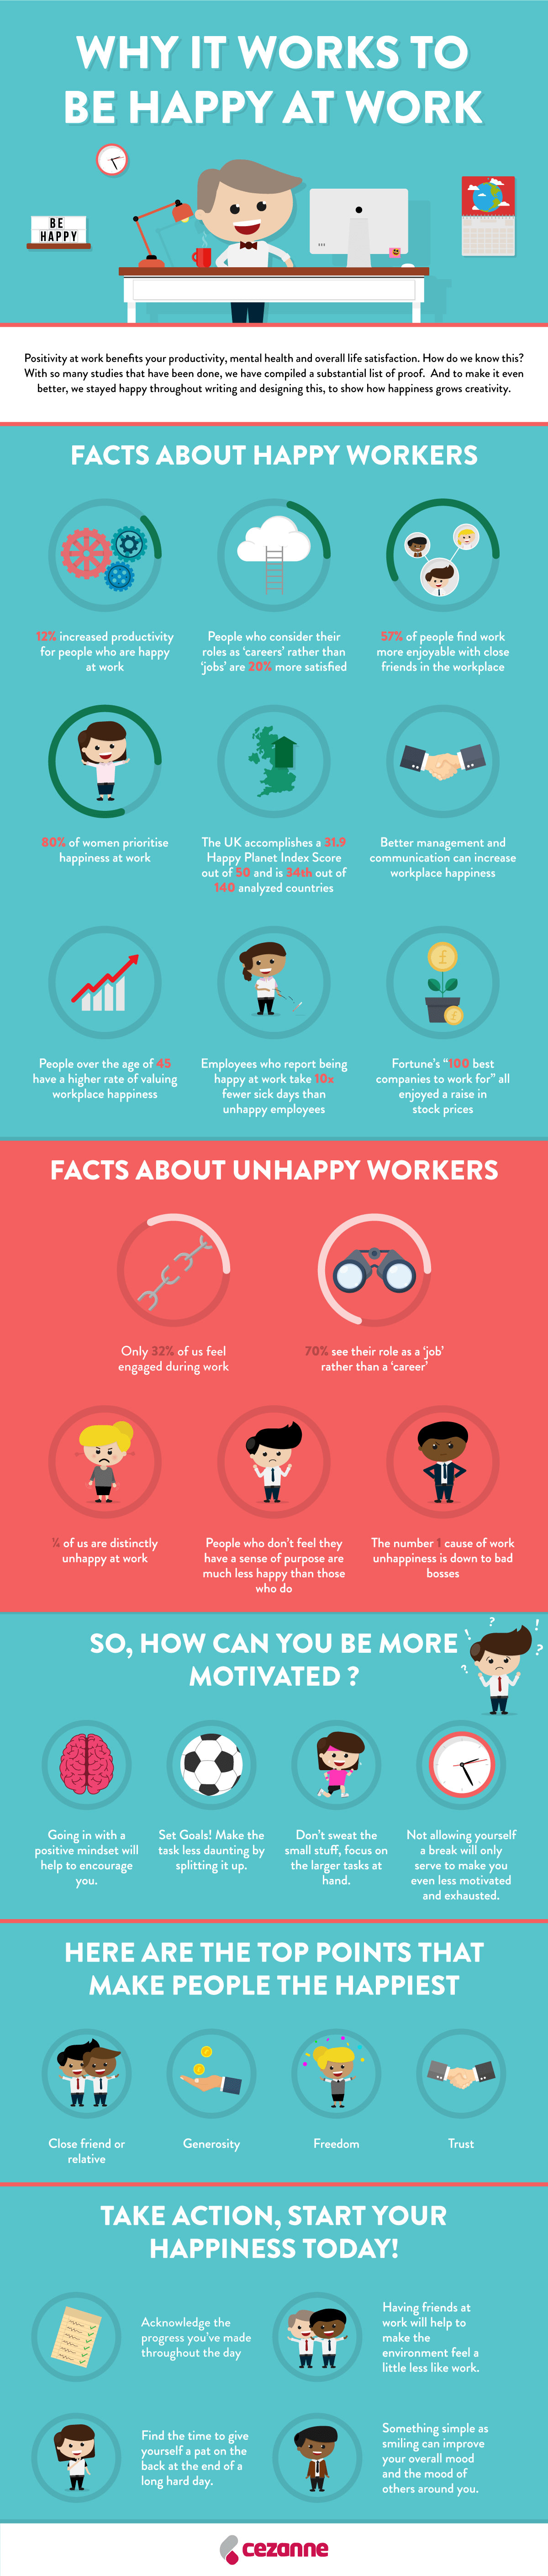 Why-it-works-to-be-happy-at-work